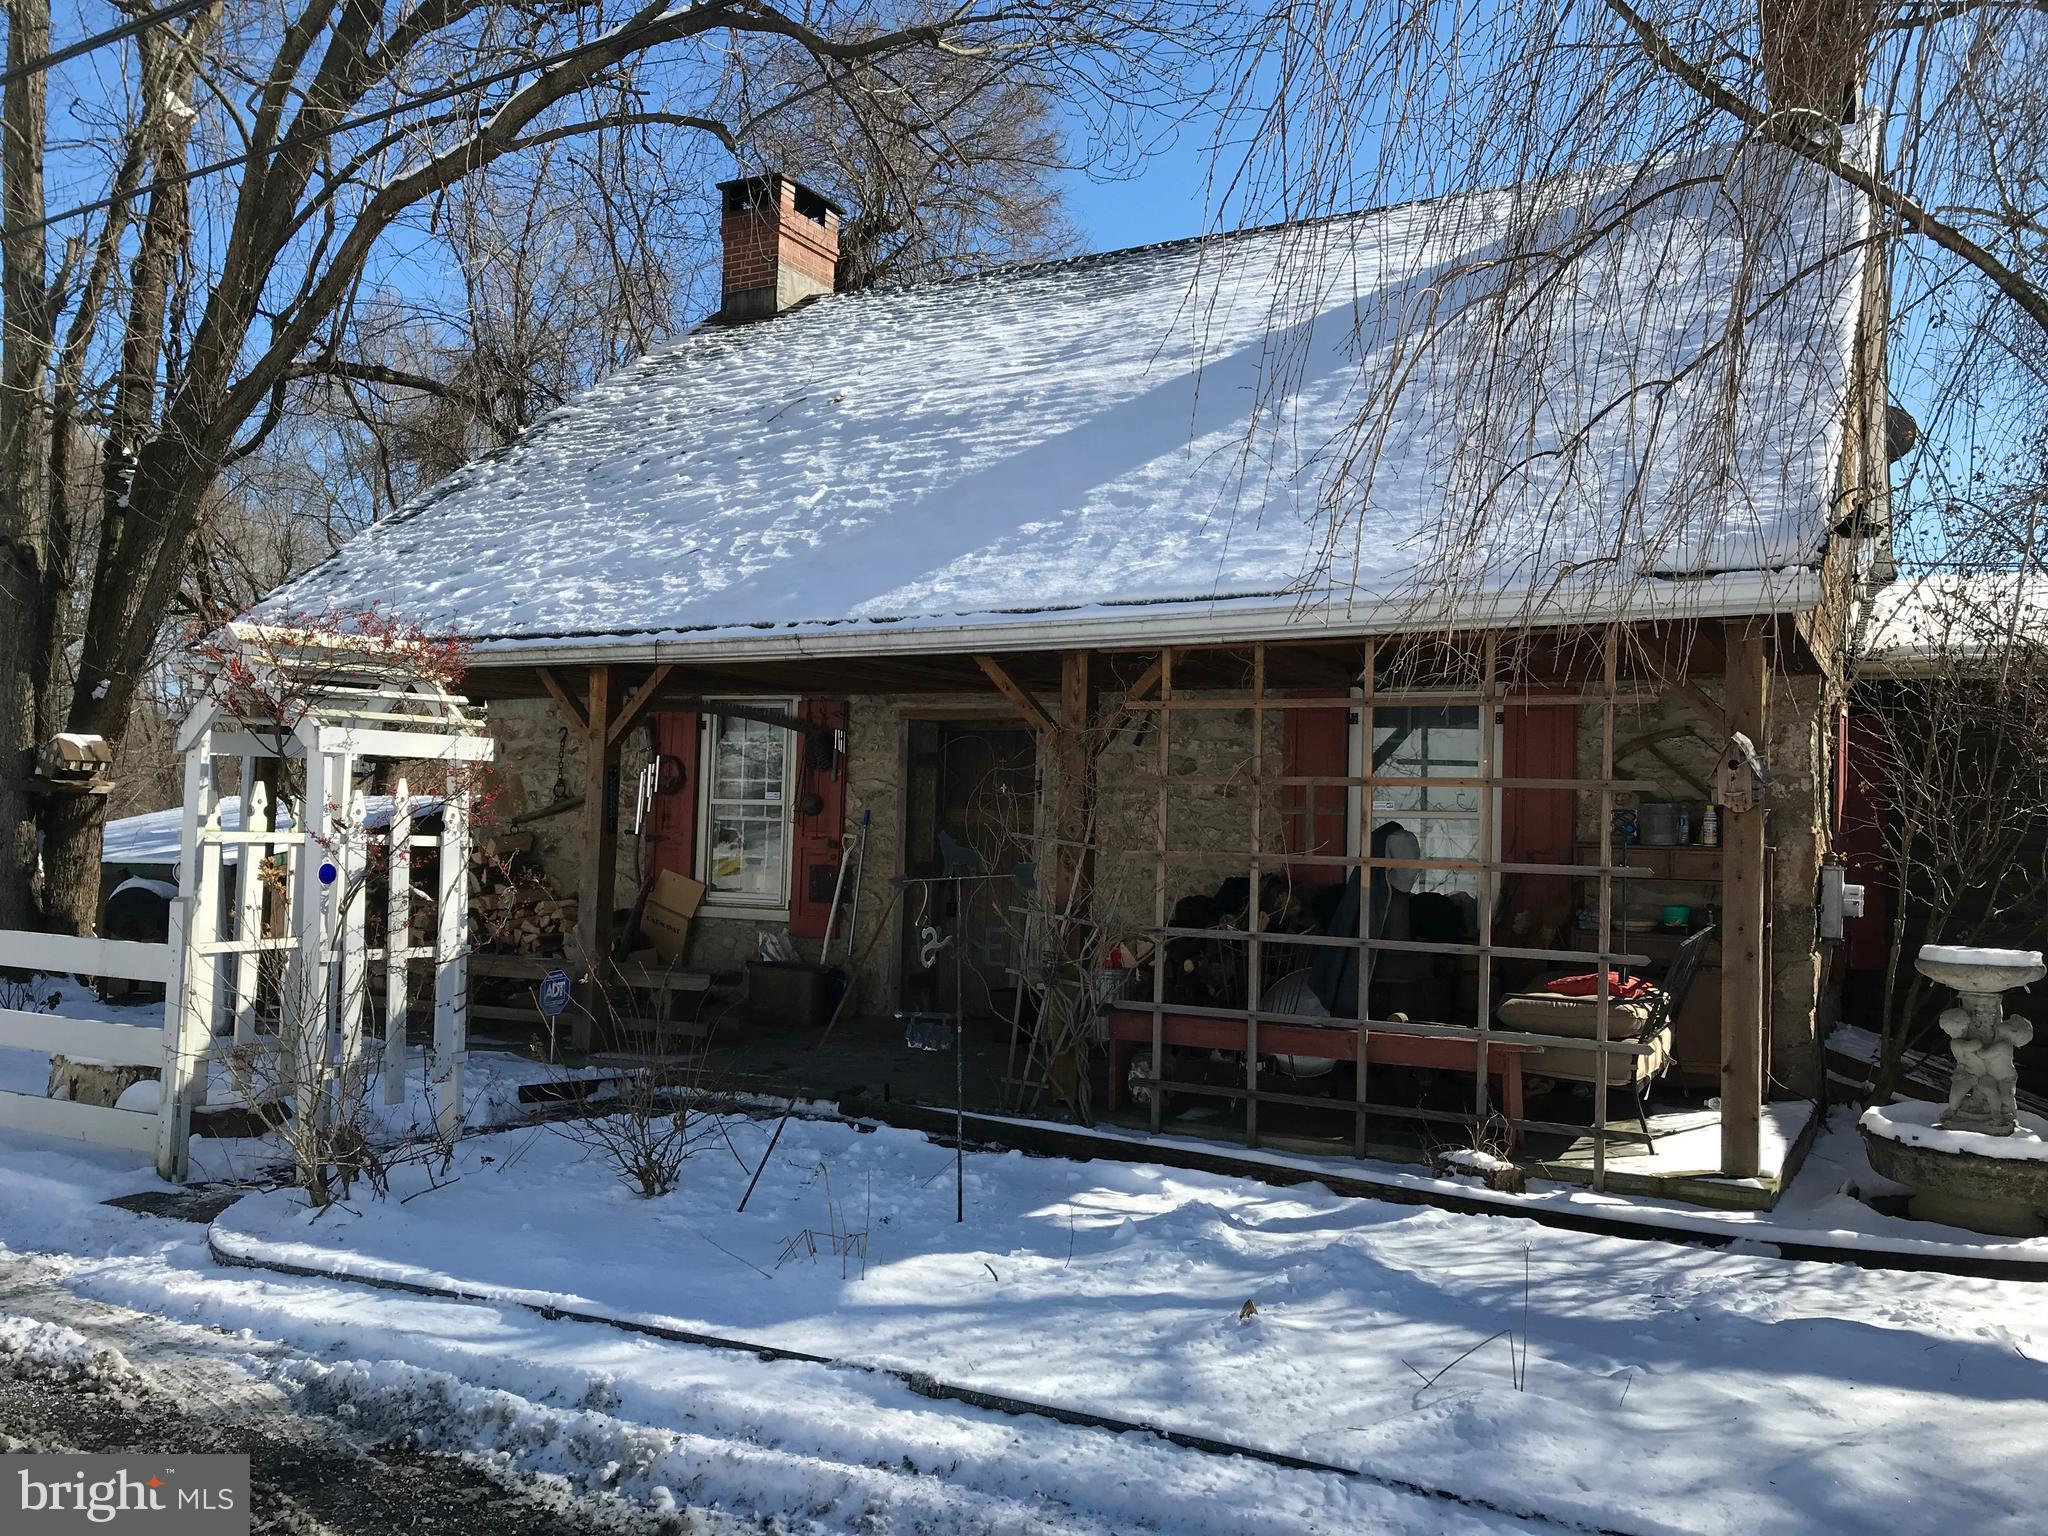 545 COUNTY LINE ROAD, RIEGELSVILLE, PA 18077